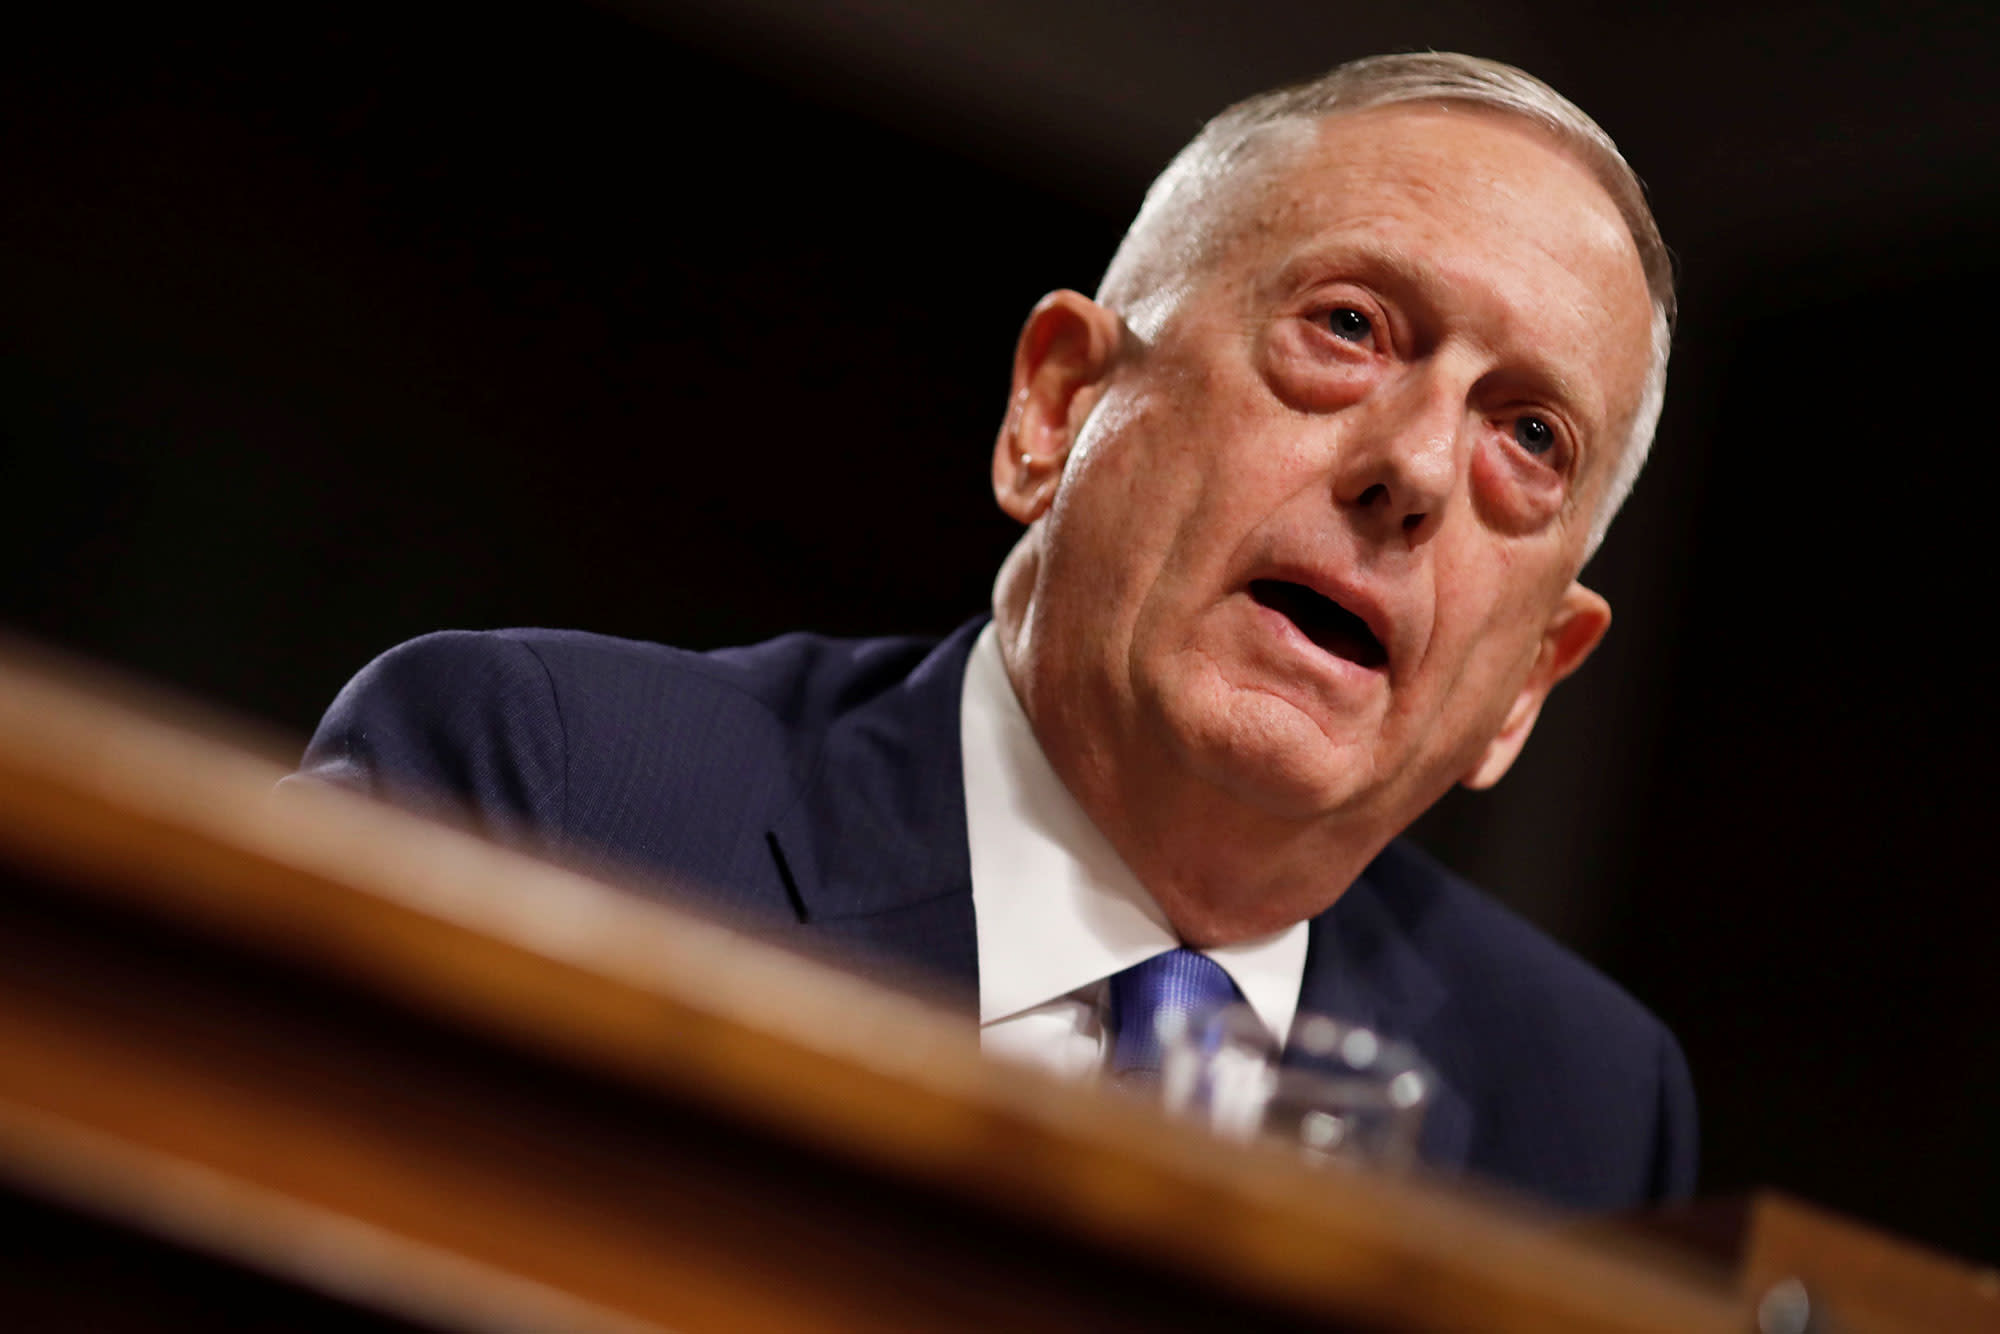 Jim Mattis once pulled Christmas duty for a young Marine—and it's the perfect holiday story